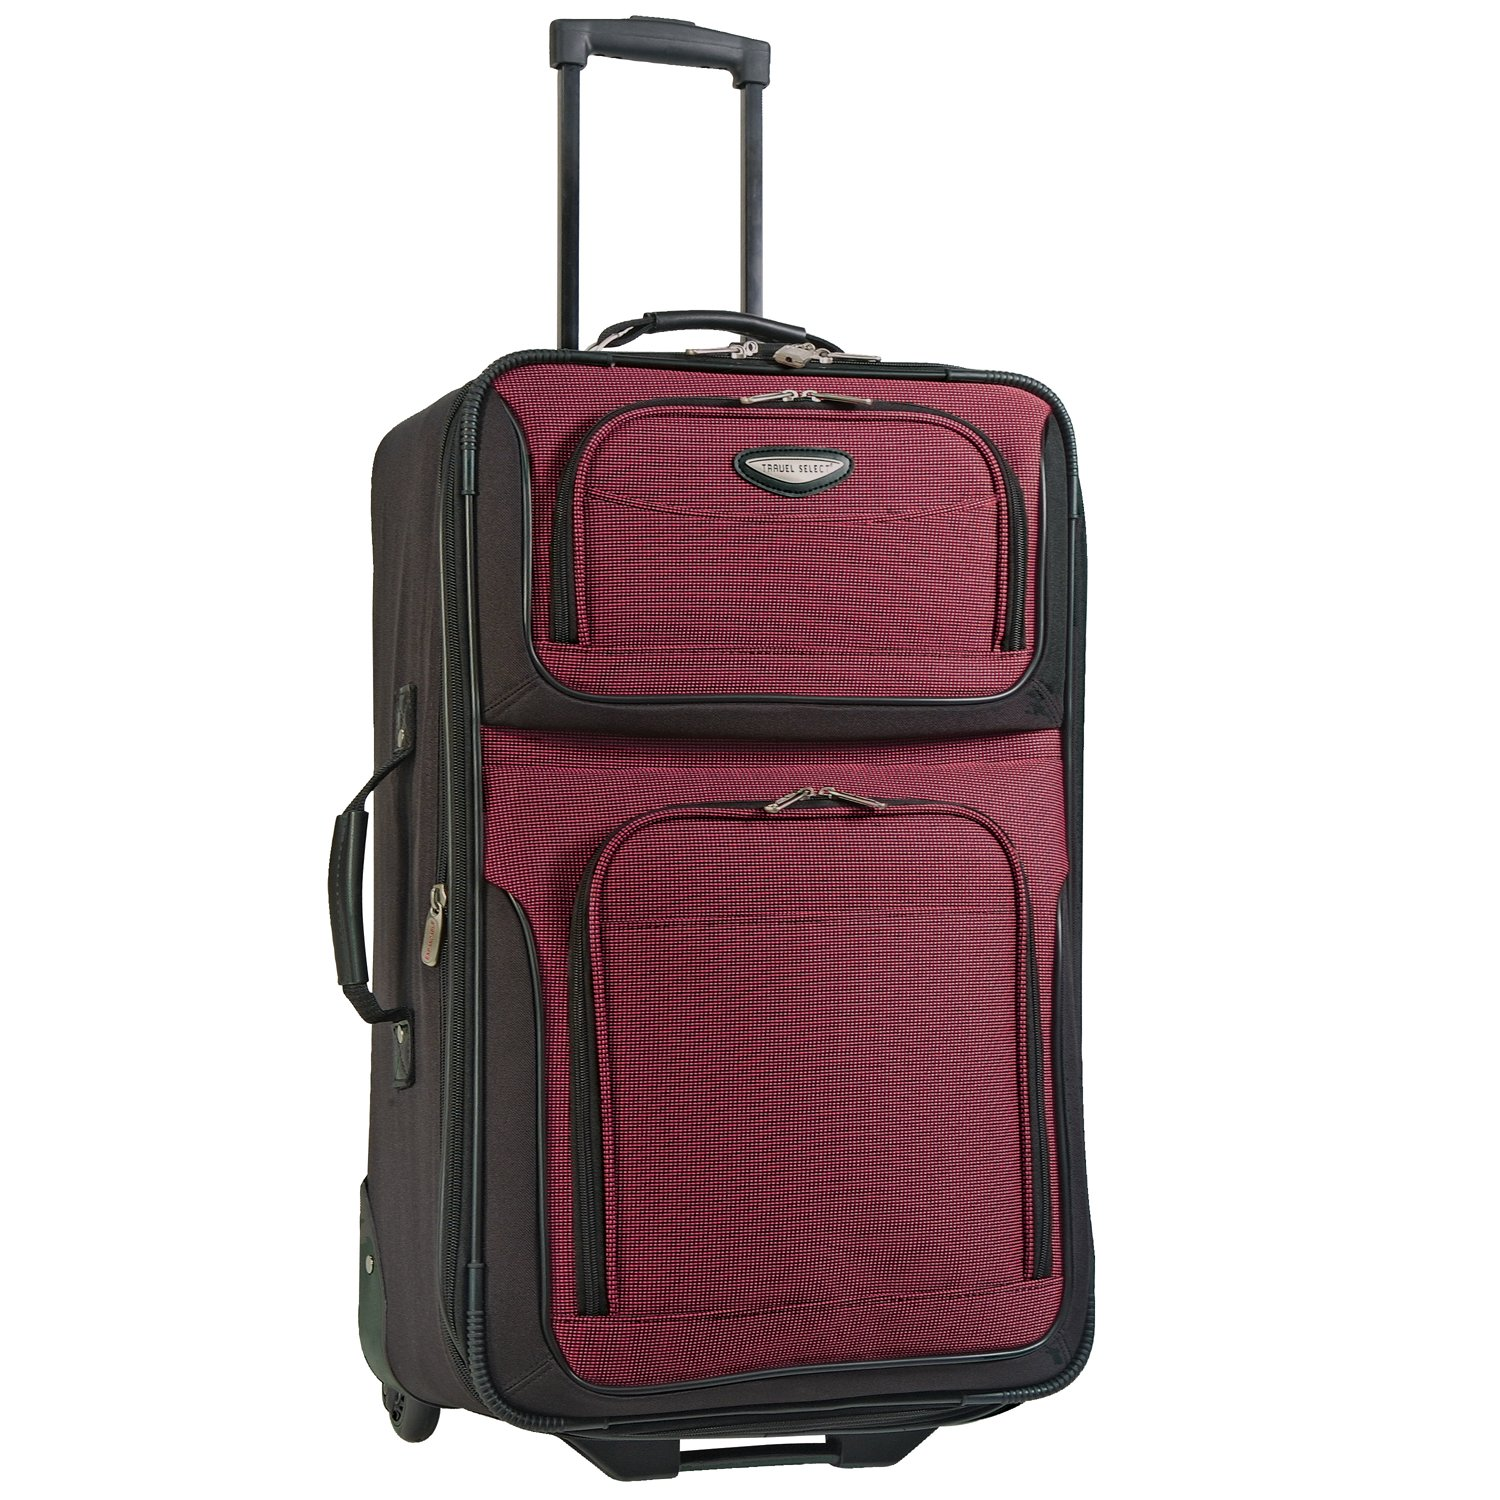 Travel Select Amsterdam 25'' Expandable Rolling Upright Luggage, Burgundy by Travel Select